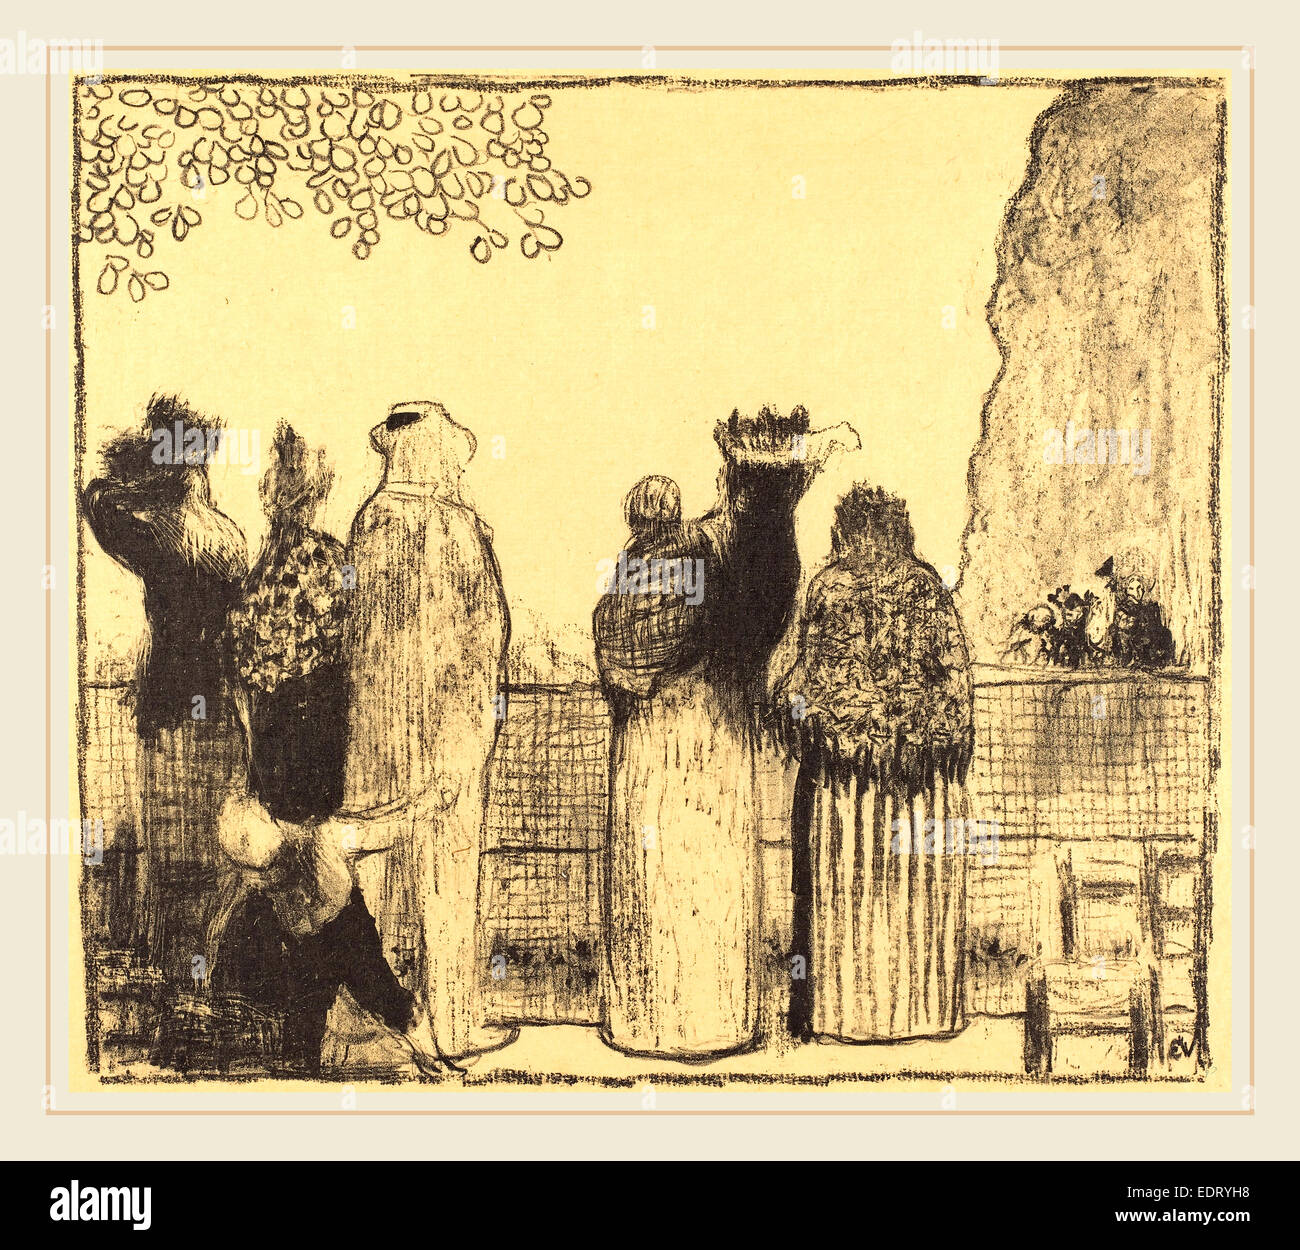 Edouard Vuillard (French, 1868-1940), The Tuileries (Les Tuileries), published 1895, lithograph - Stock Image